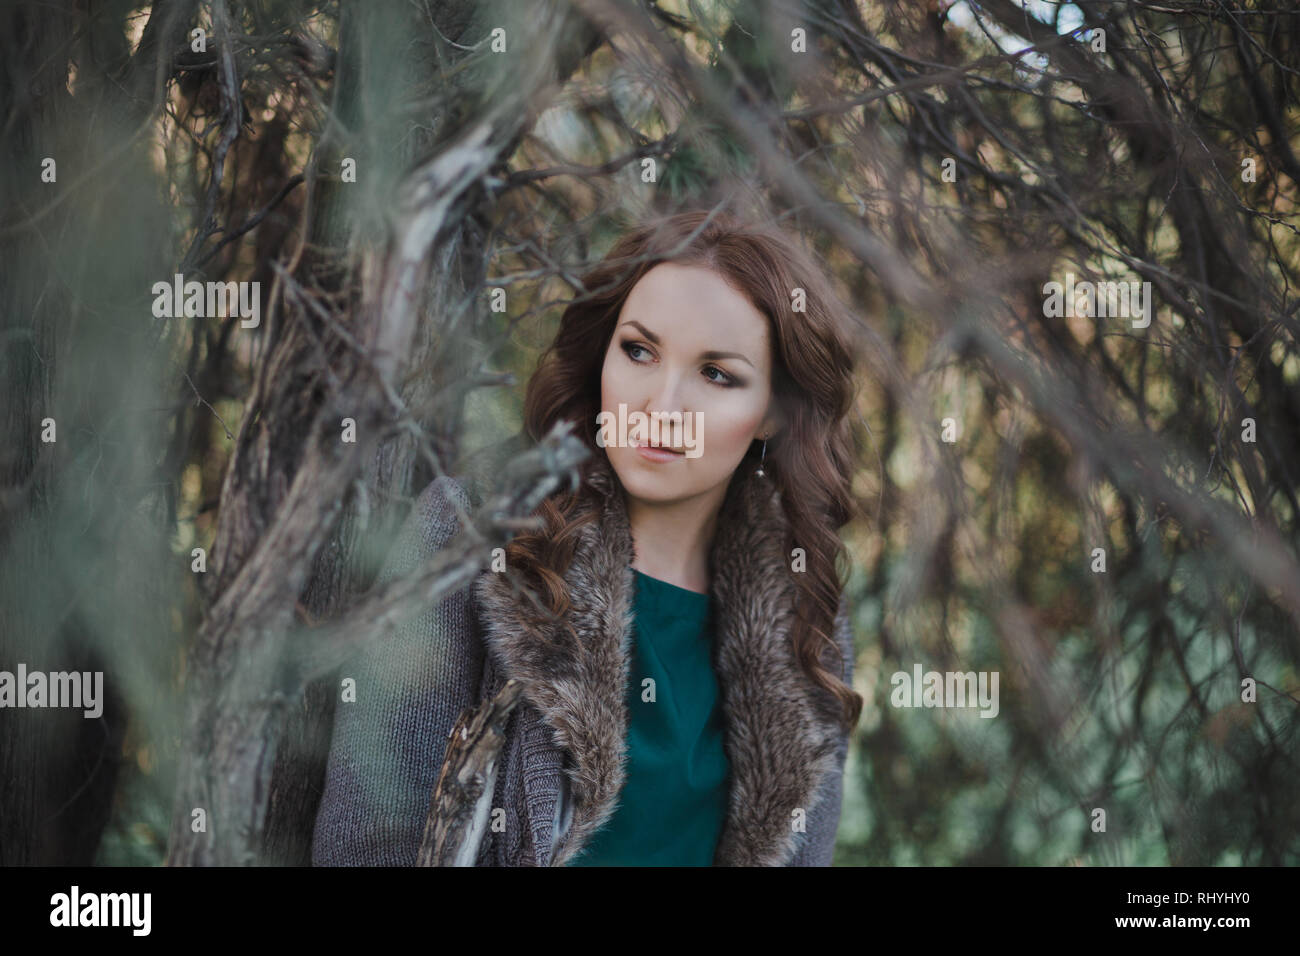 Beautiful genuine lady mystic with curly brunette hairs and adorable eyes dressed in fancy stylish warm clothes with fur on neck lonely posing sit for - Stock Image